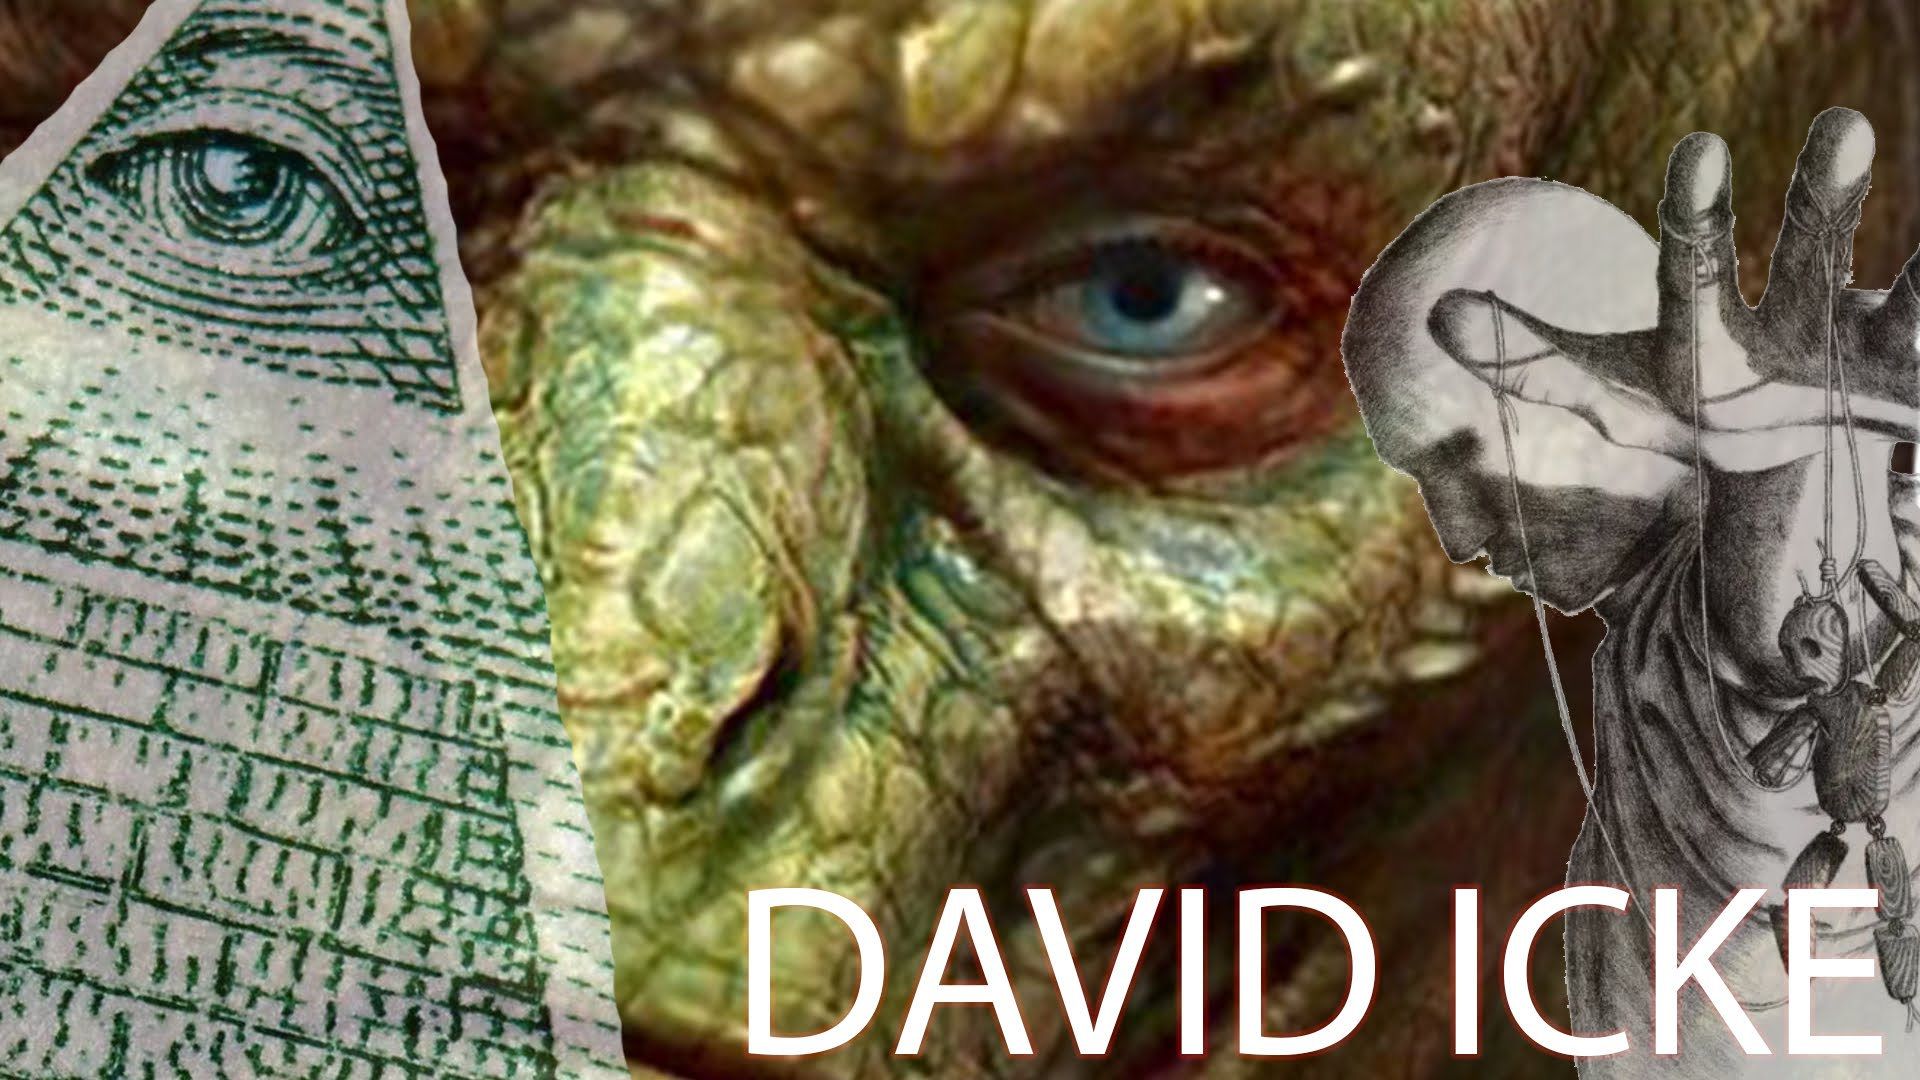 david icke reptilians youtube still